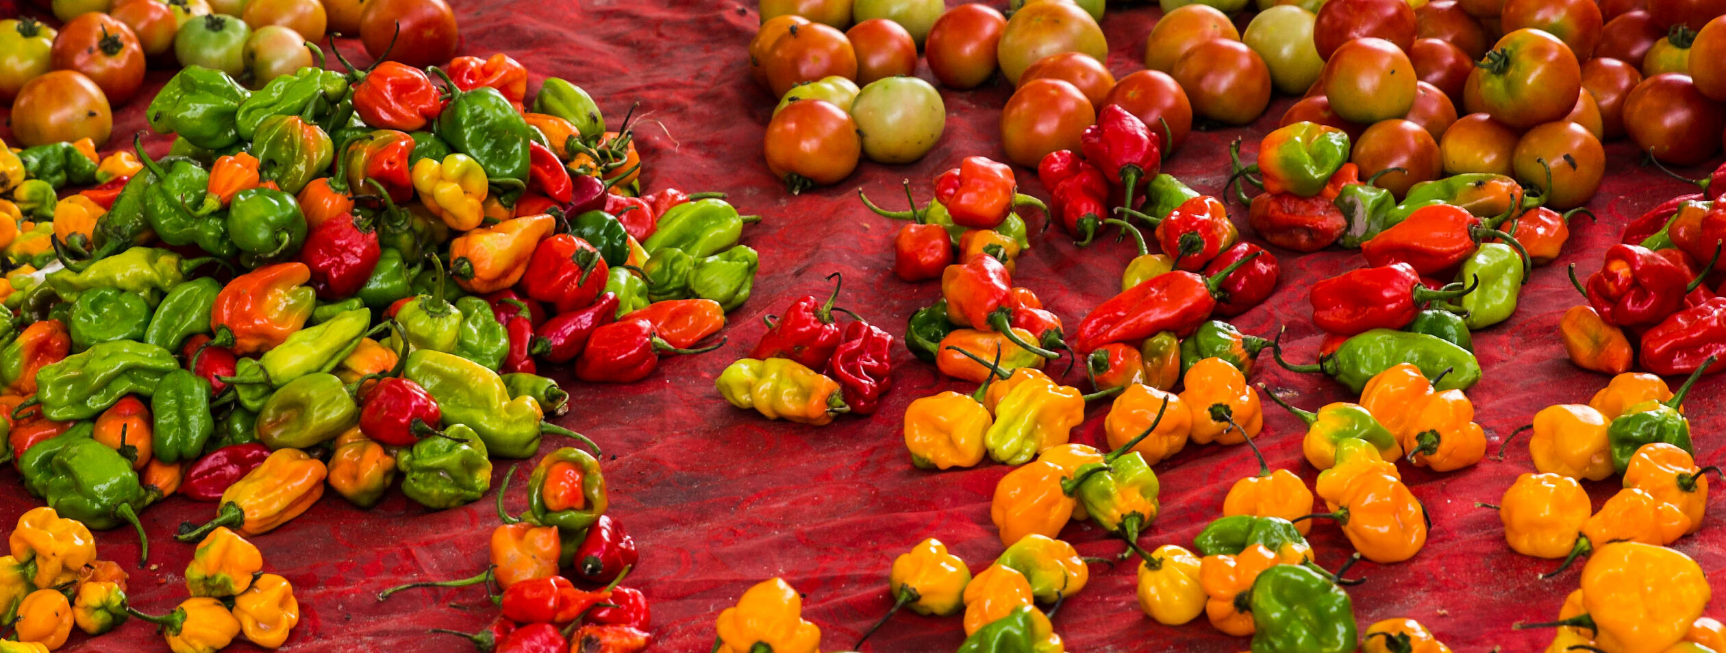 An image of several ripe and colourful varieties of furit and vegitables on display in an African market.